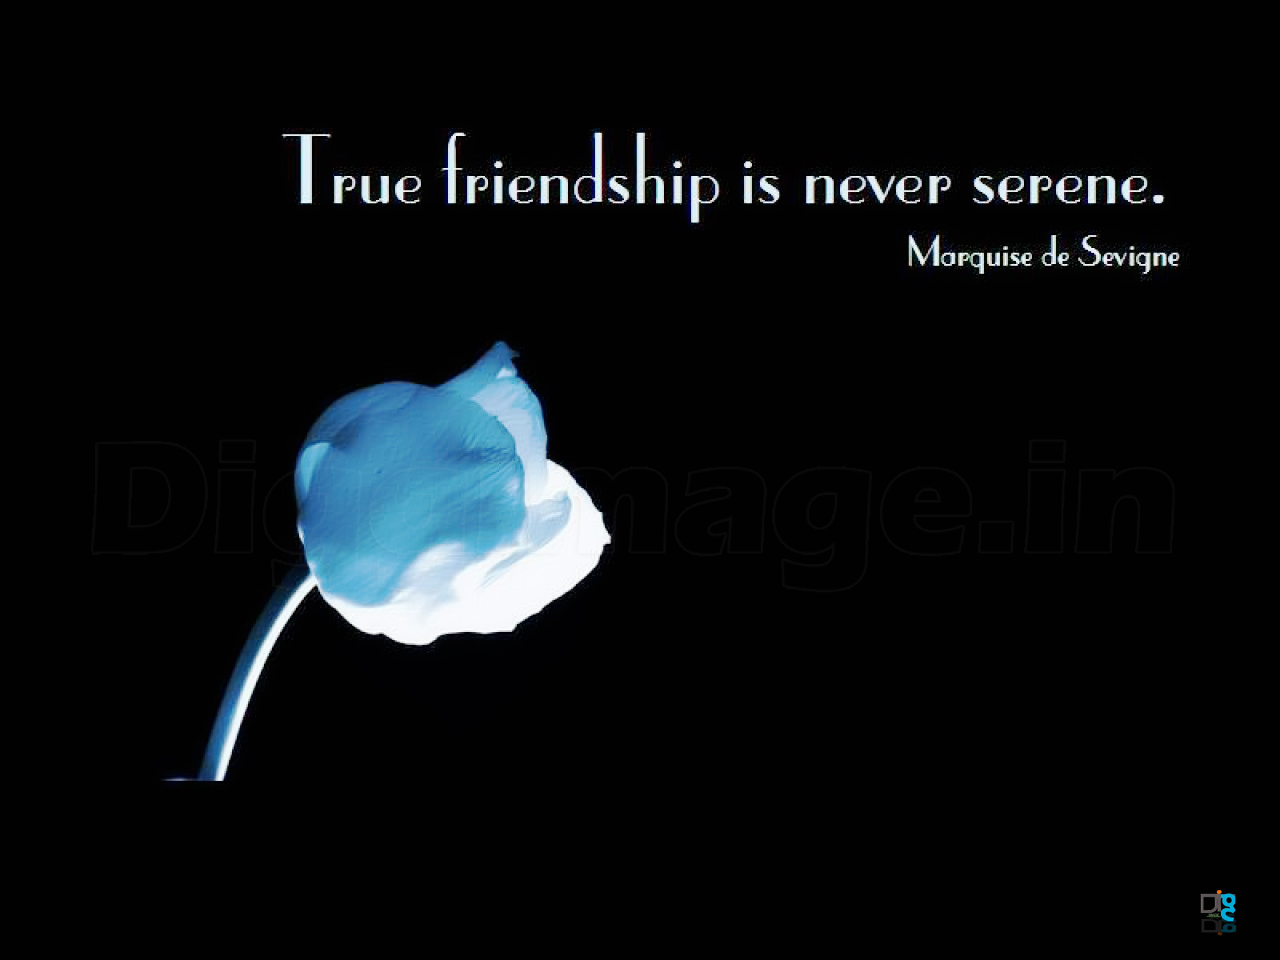 wallpaper friendship facebook - photo #9